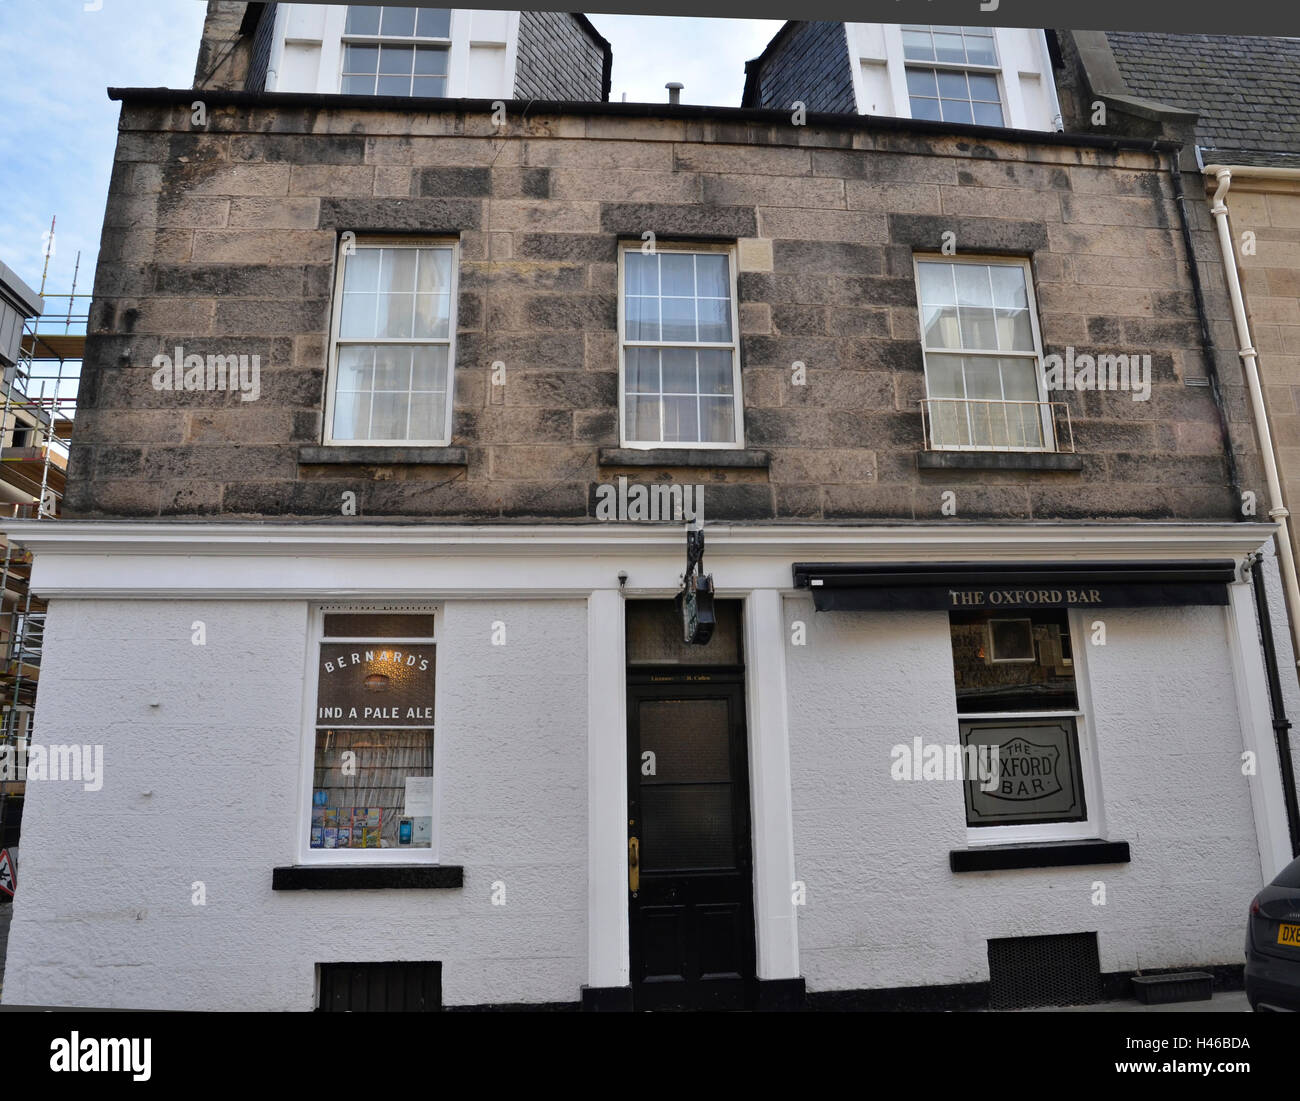 The Oxford Bar in Young Street, Edinburgh. - Stock Image